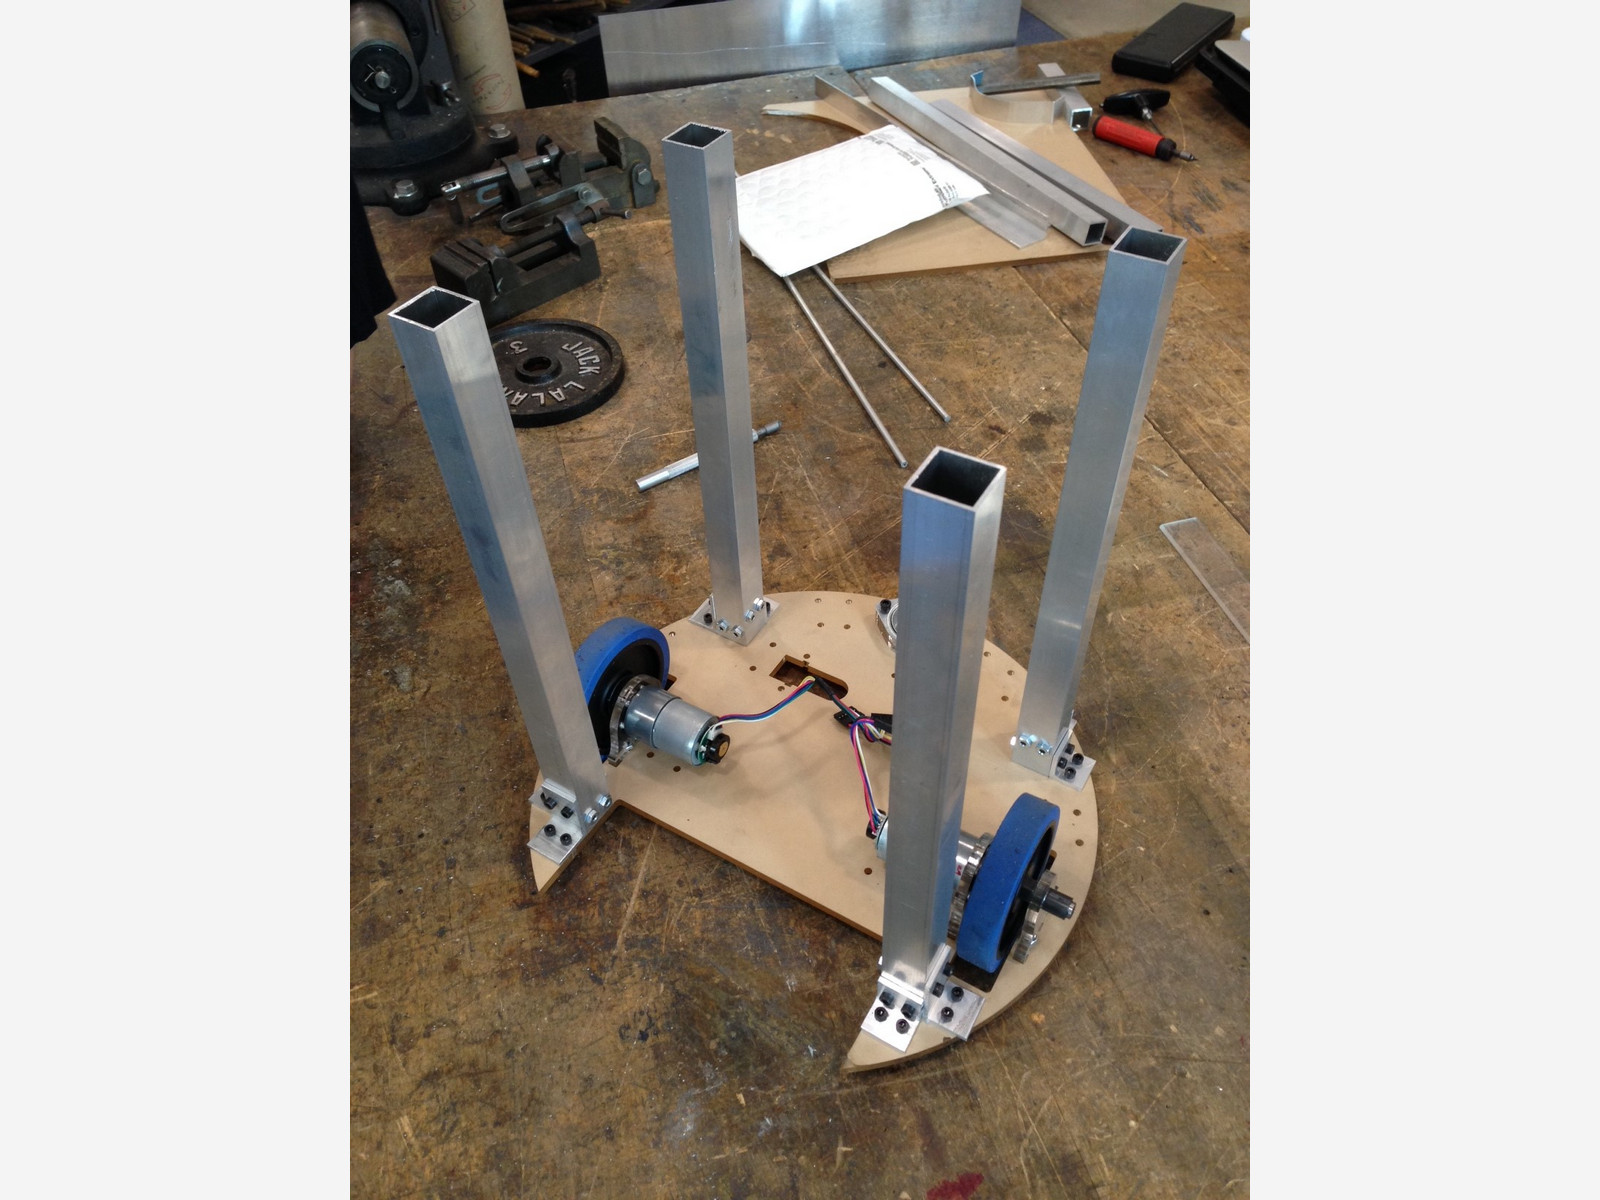 team 9 mit maslab robot base and mounting structure